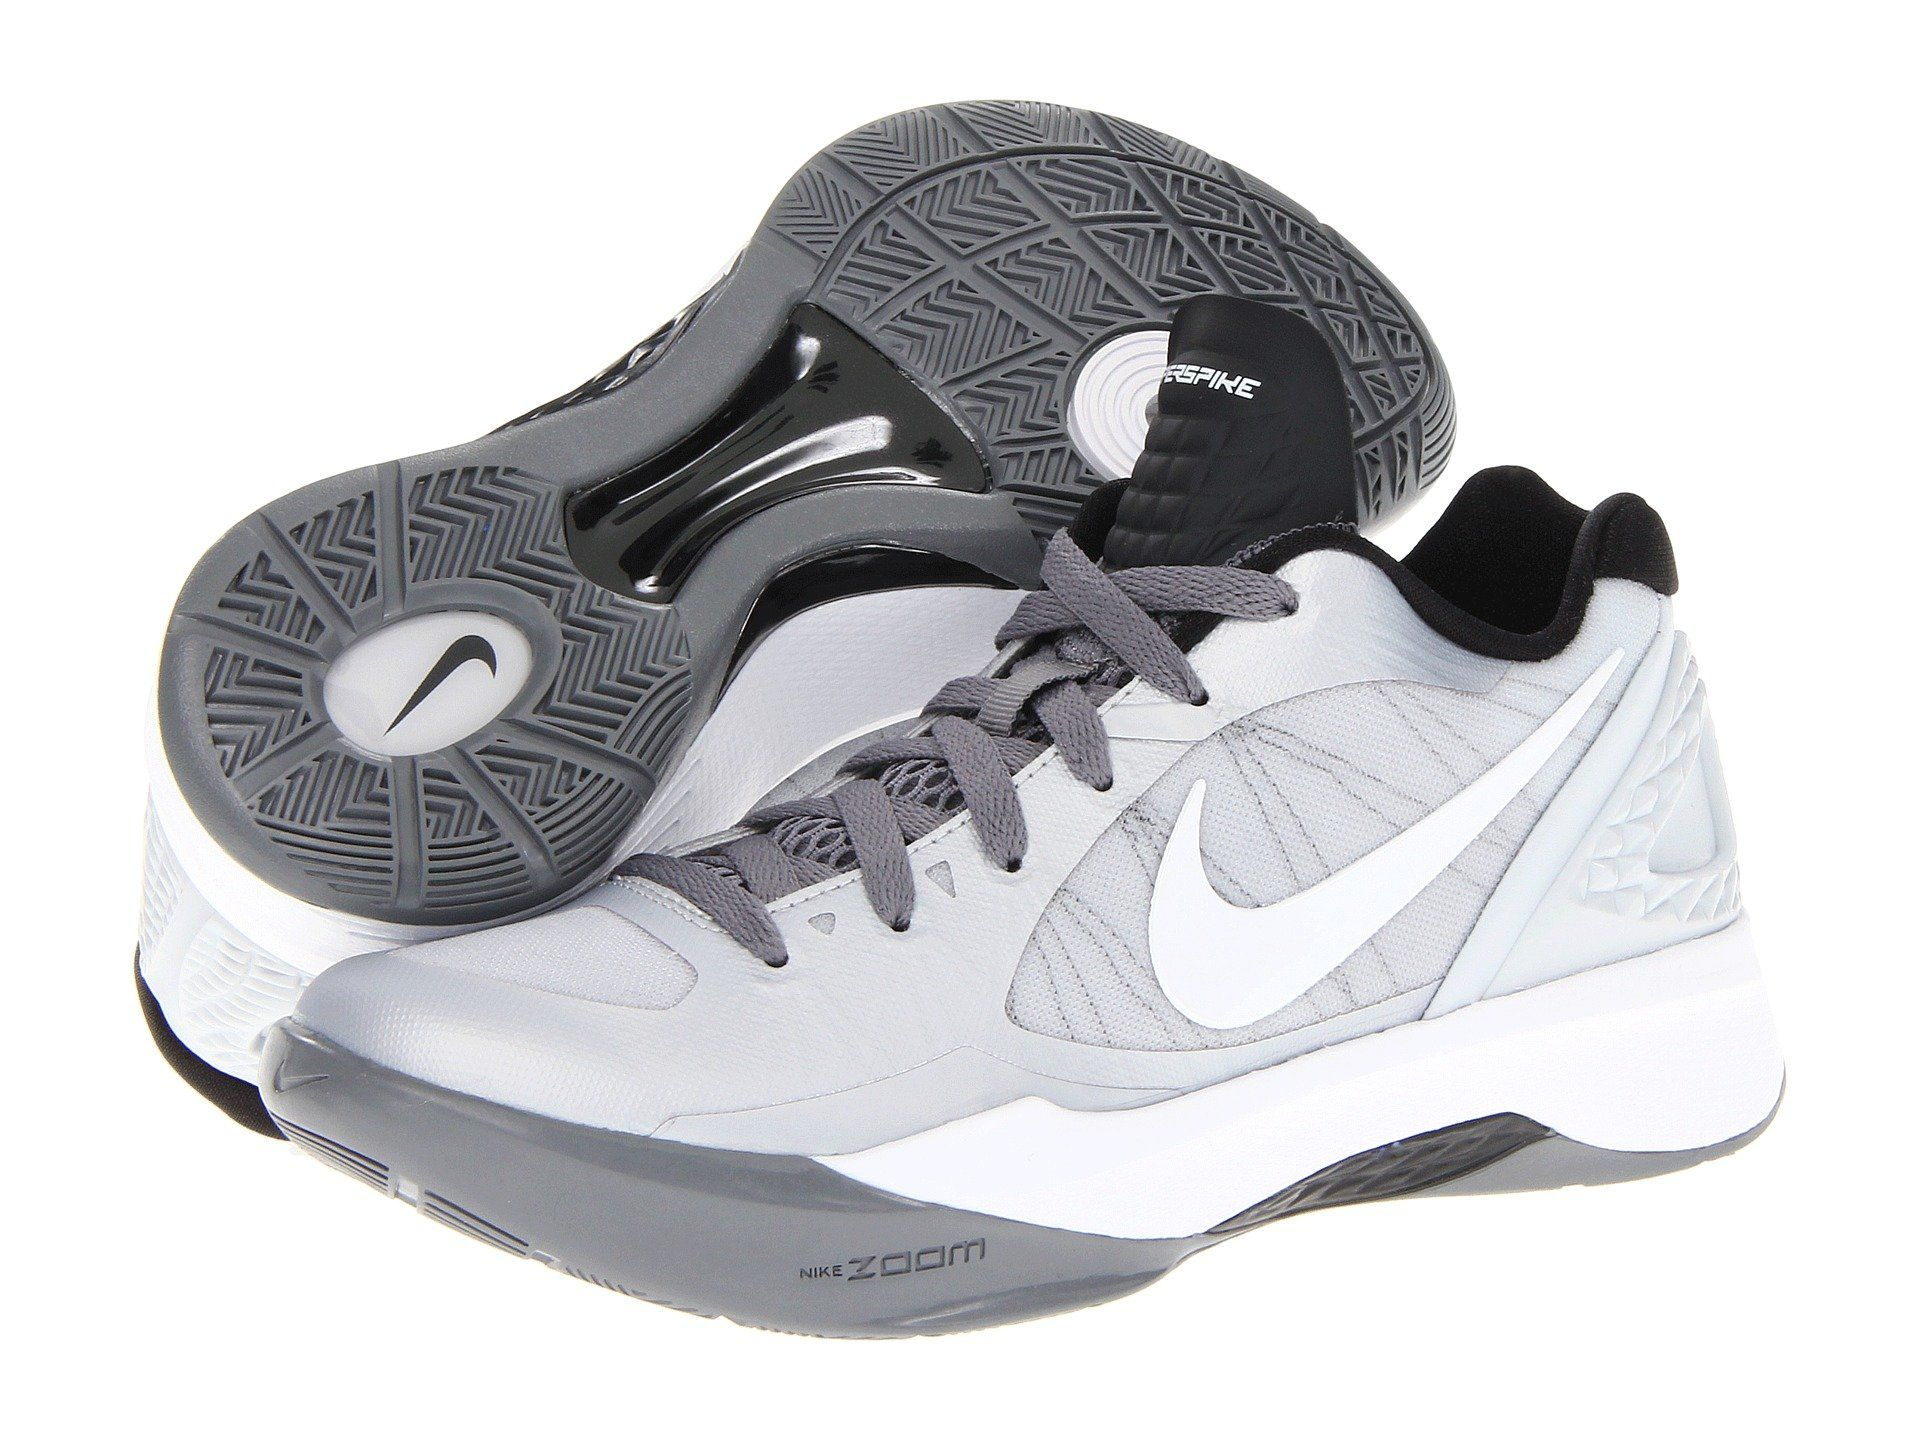 Pin By Stephanie Roden On Volleyball Volleyball Shoes White Athletic Shoes Nike Volleyball